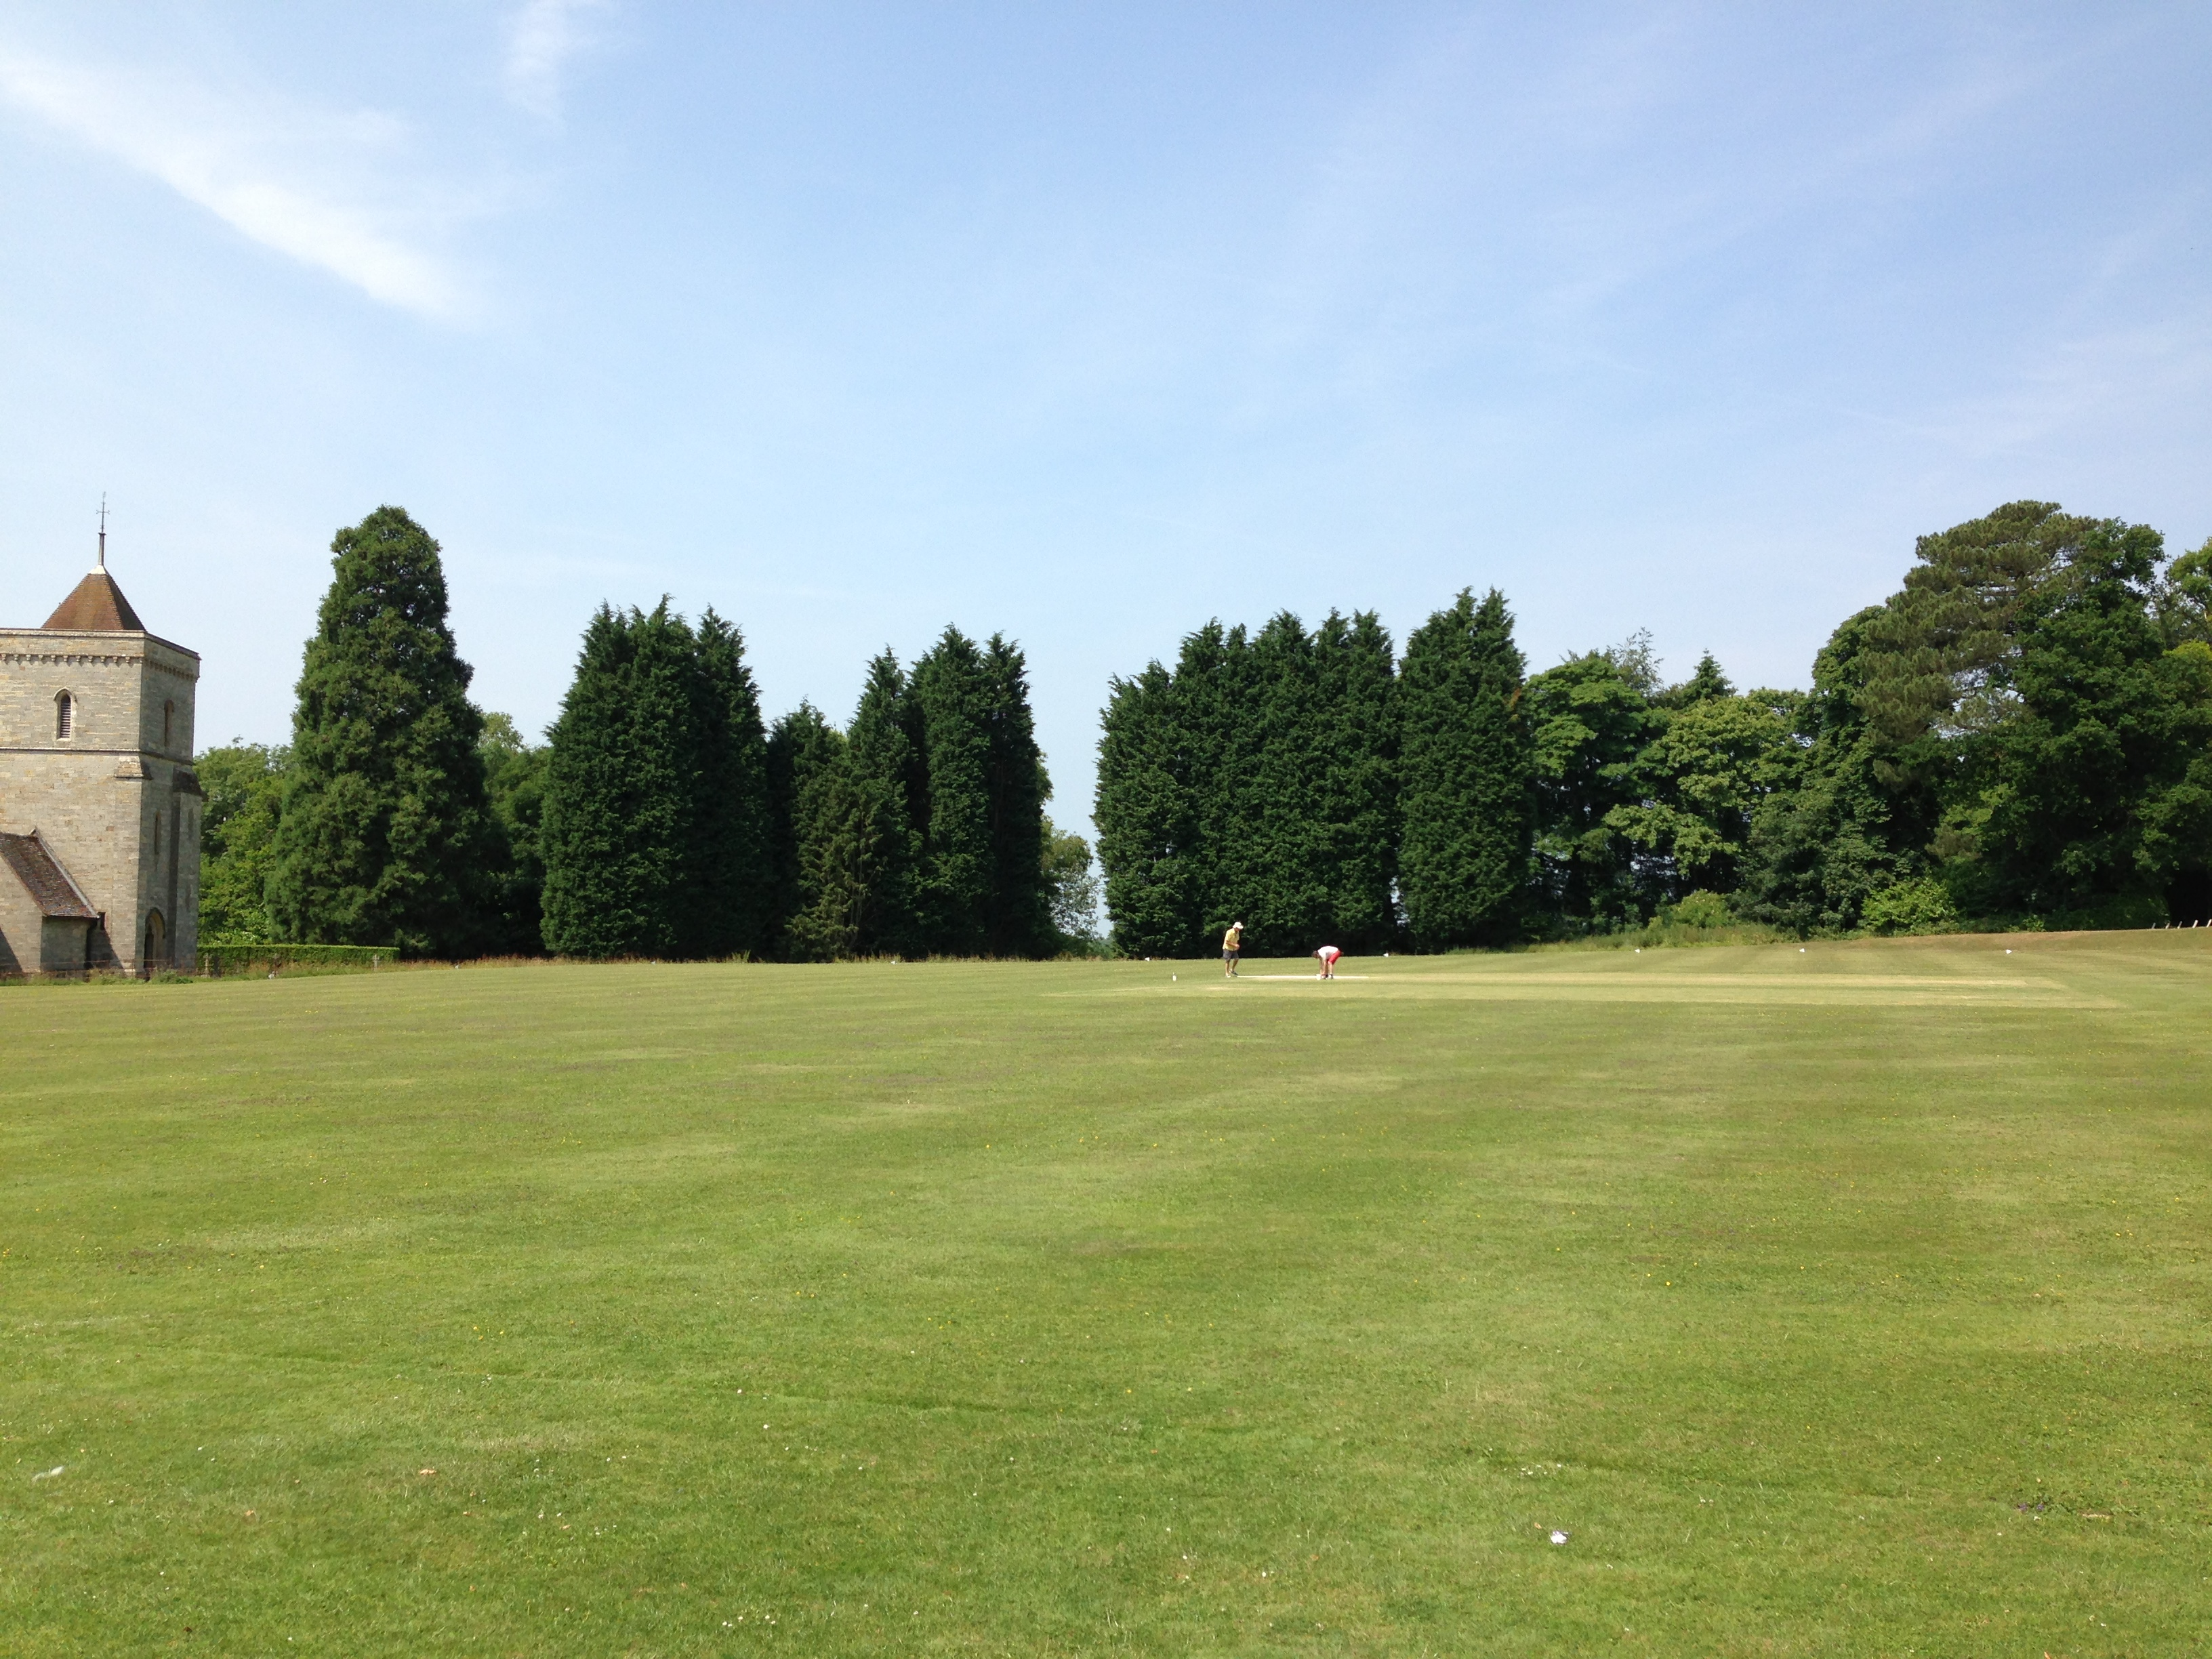 Temple Grove Cricket